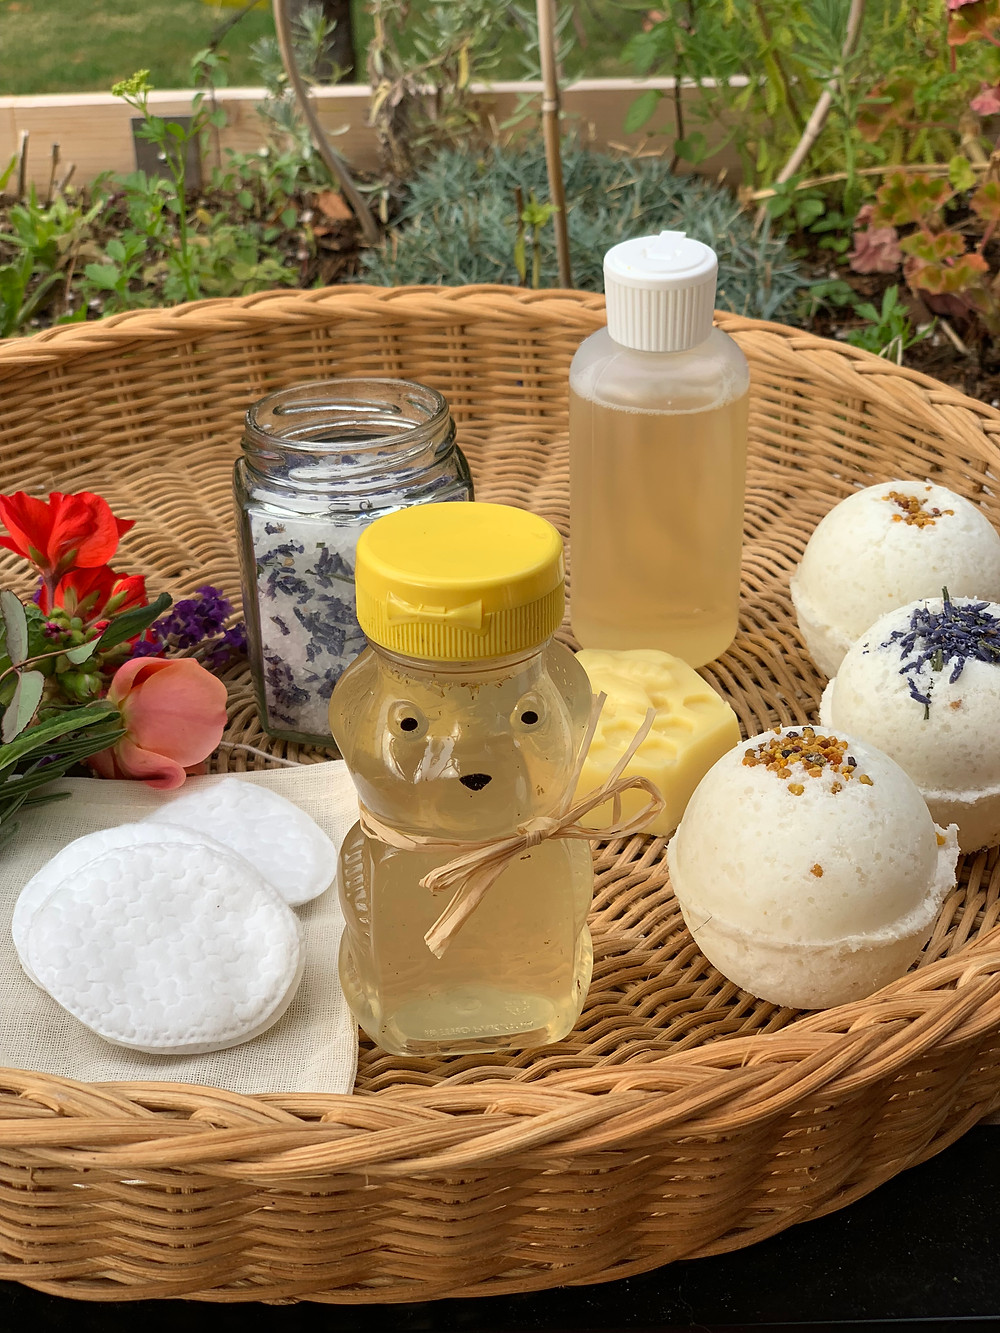 A basket of homemade body care products